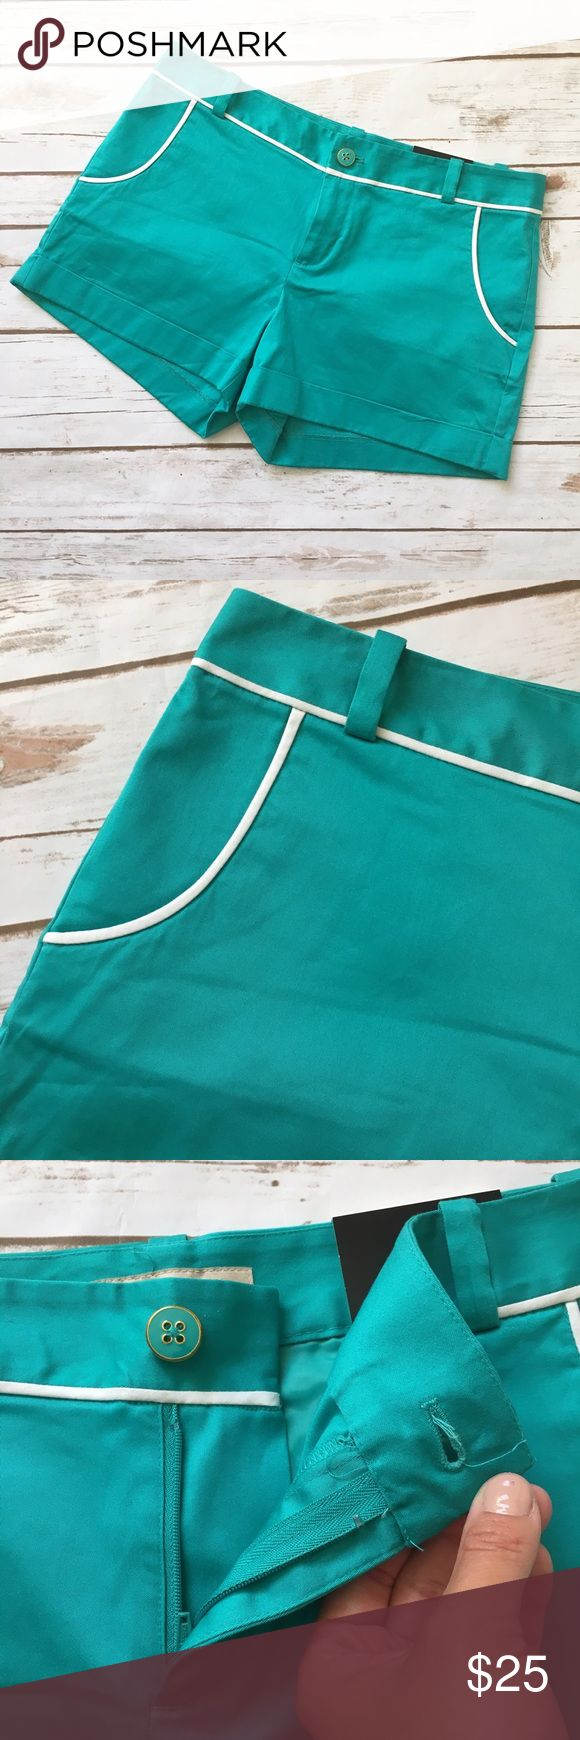 """NWT Banana Republic Teal Shorts Classy bright teal shorts with white trim by Banana Republic. • 12"""" long • 3"""" inseam • 17"""" waist laid flat • 12"""" thigh laid flat • Has stretch • New  🚭 Smoke-free home 📬 Ships by next day 💲 Price negotiable  🔁 Open to trades Banana Republic Shorts"""